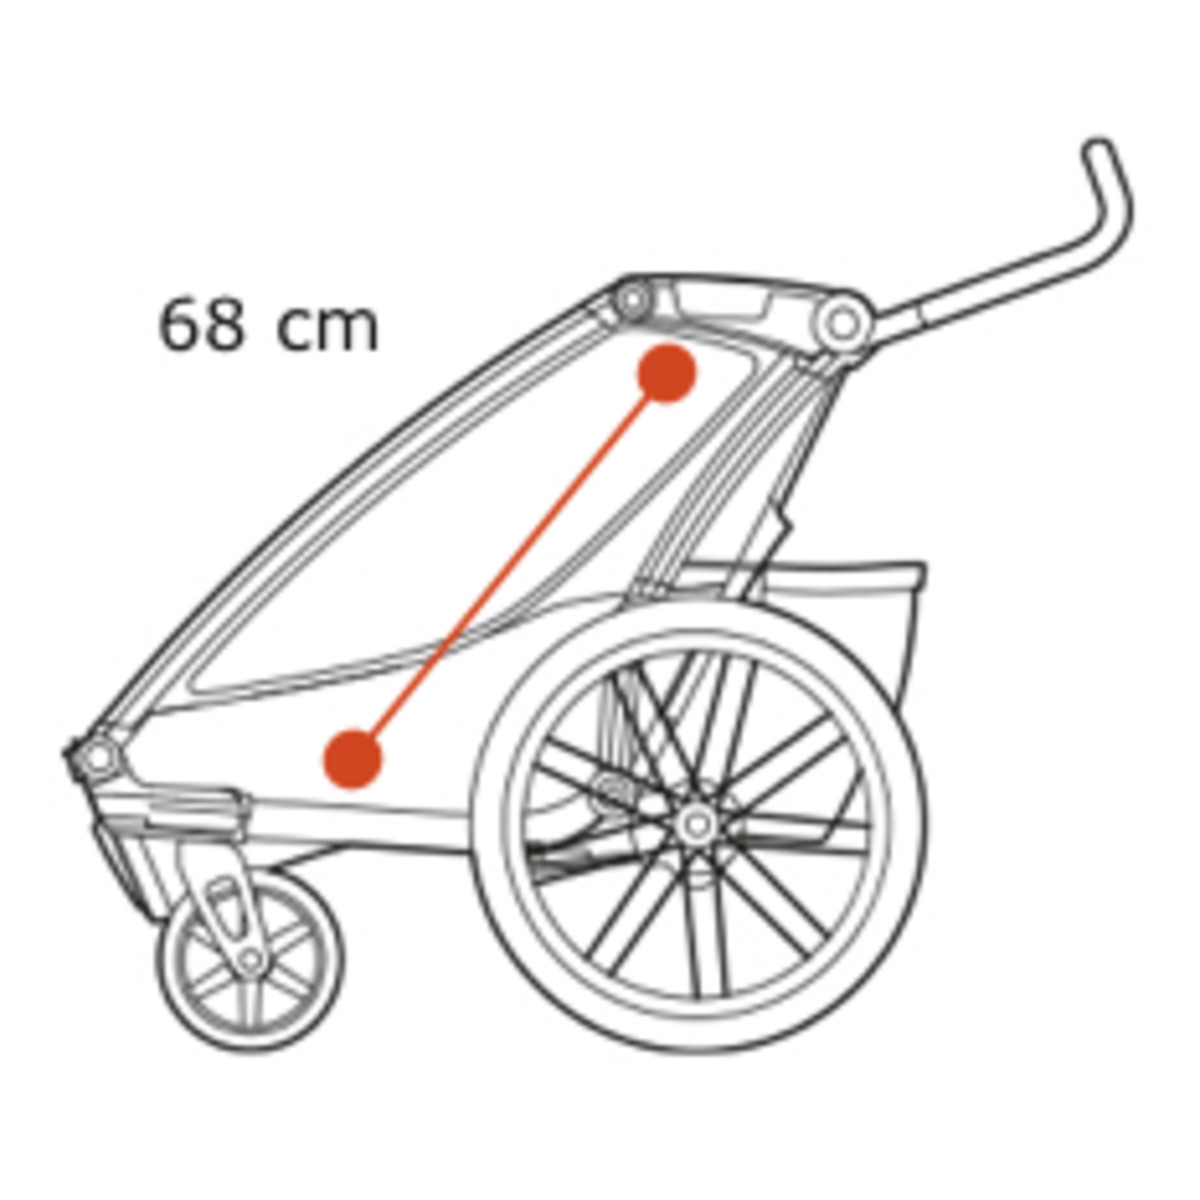 Thule Chariot Sport 2 - Sitting height